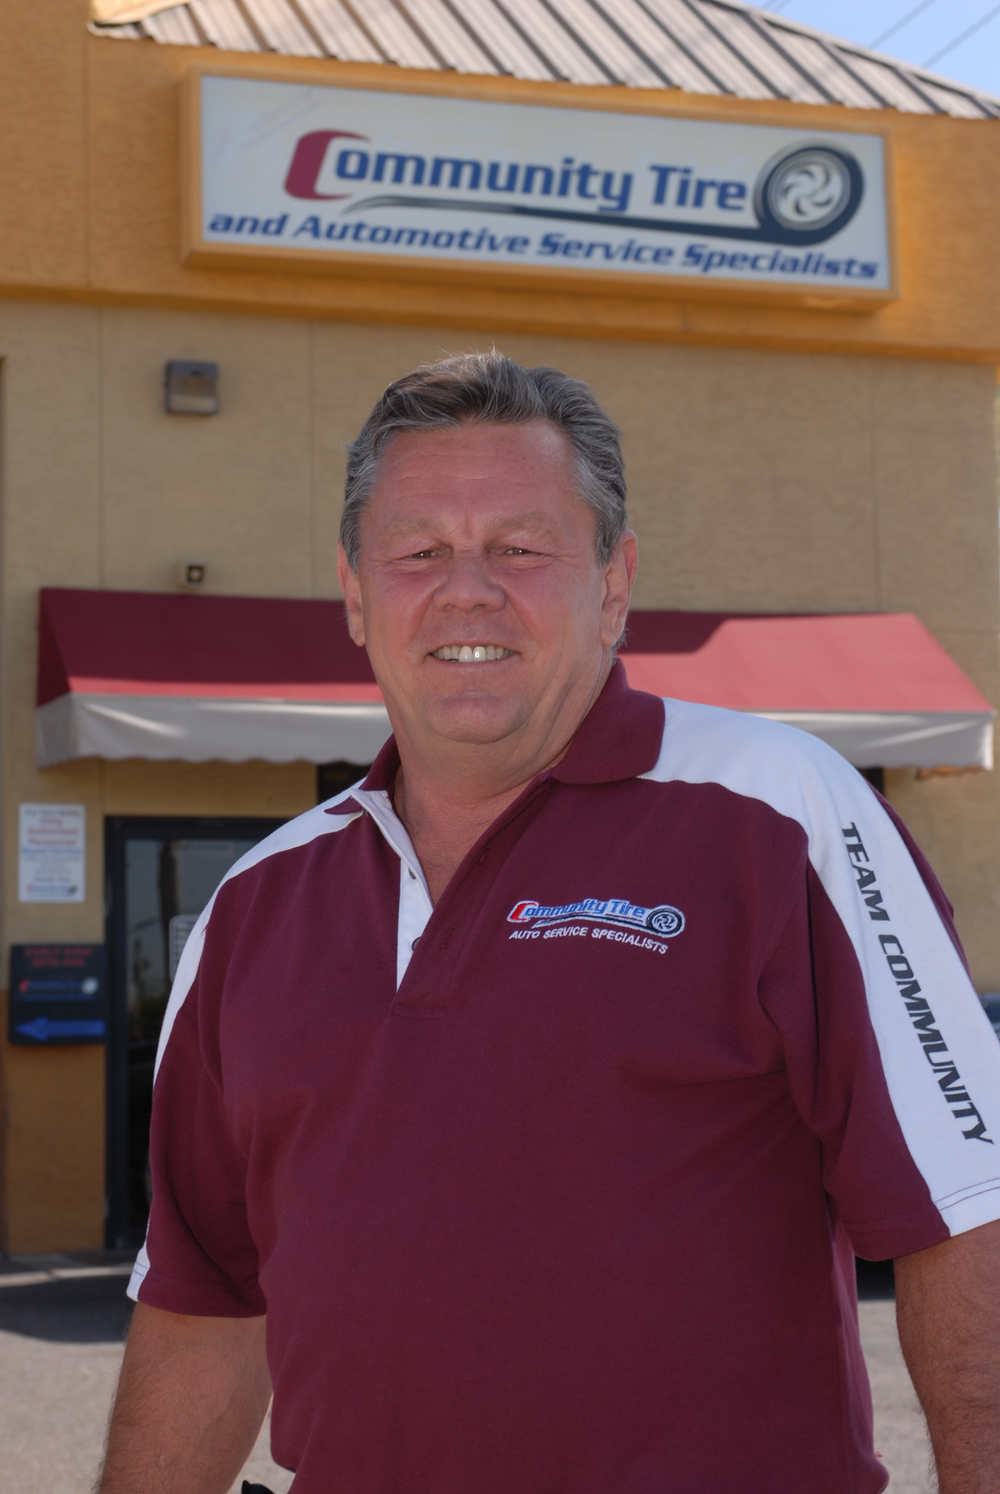 Howard Fleischmann, Communite Tire Pros